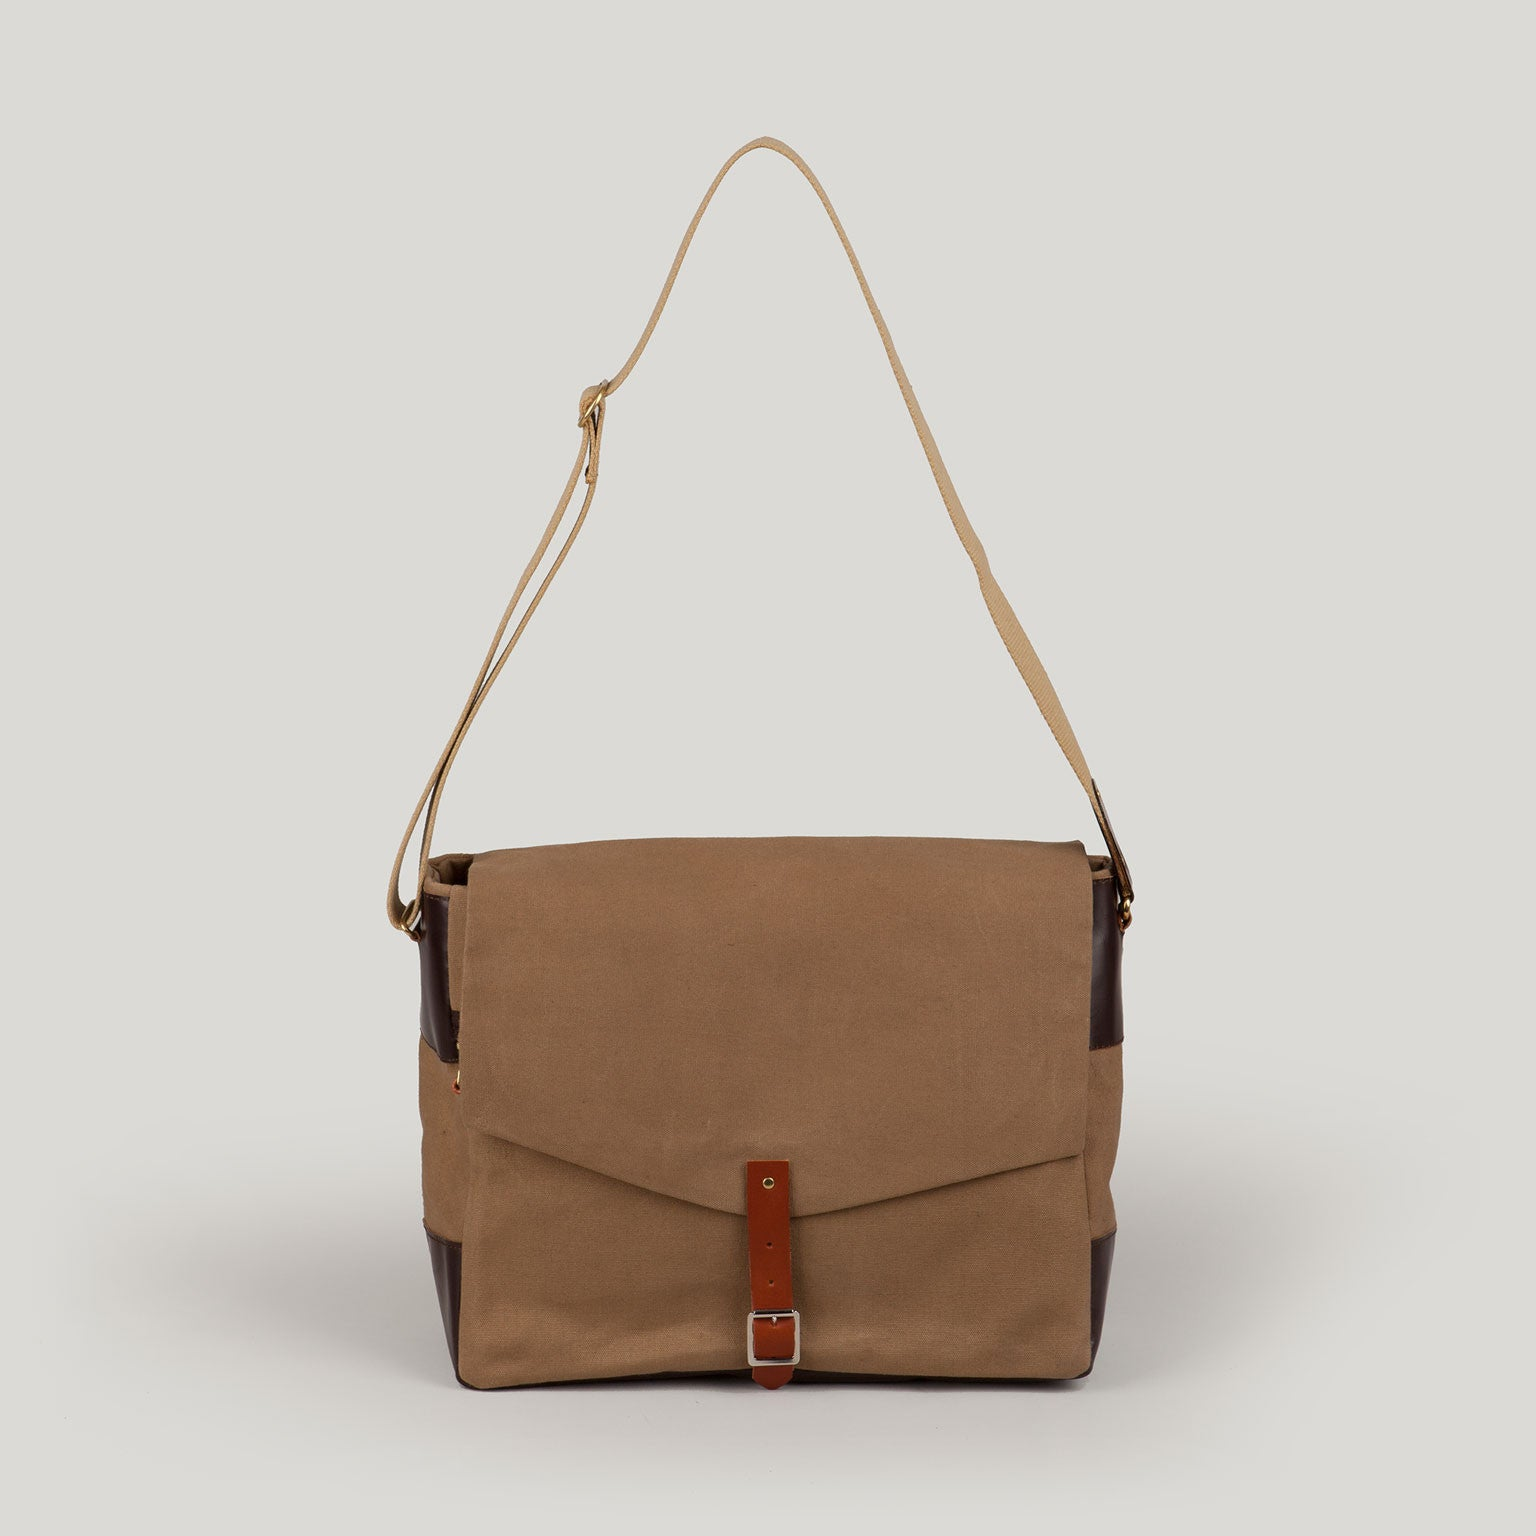 HARRY Satchel - camel